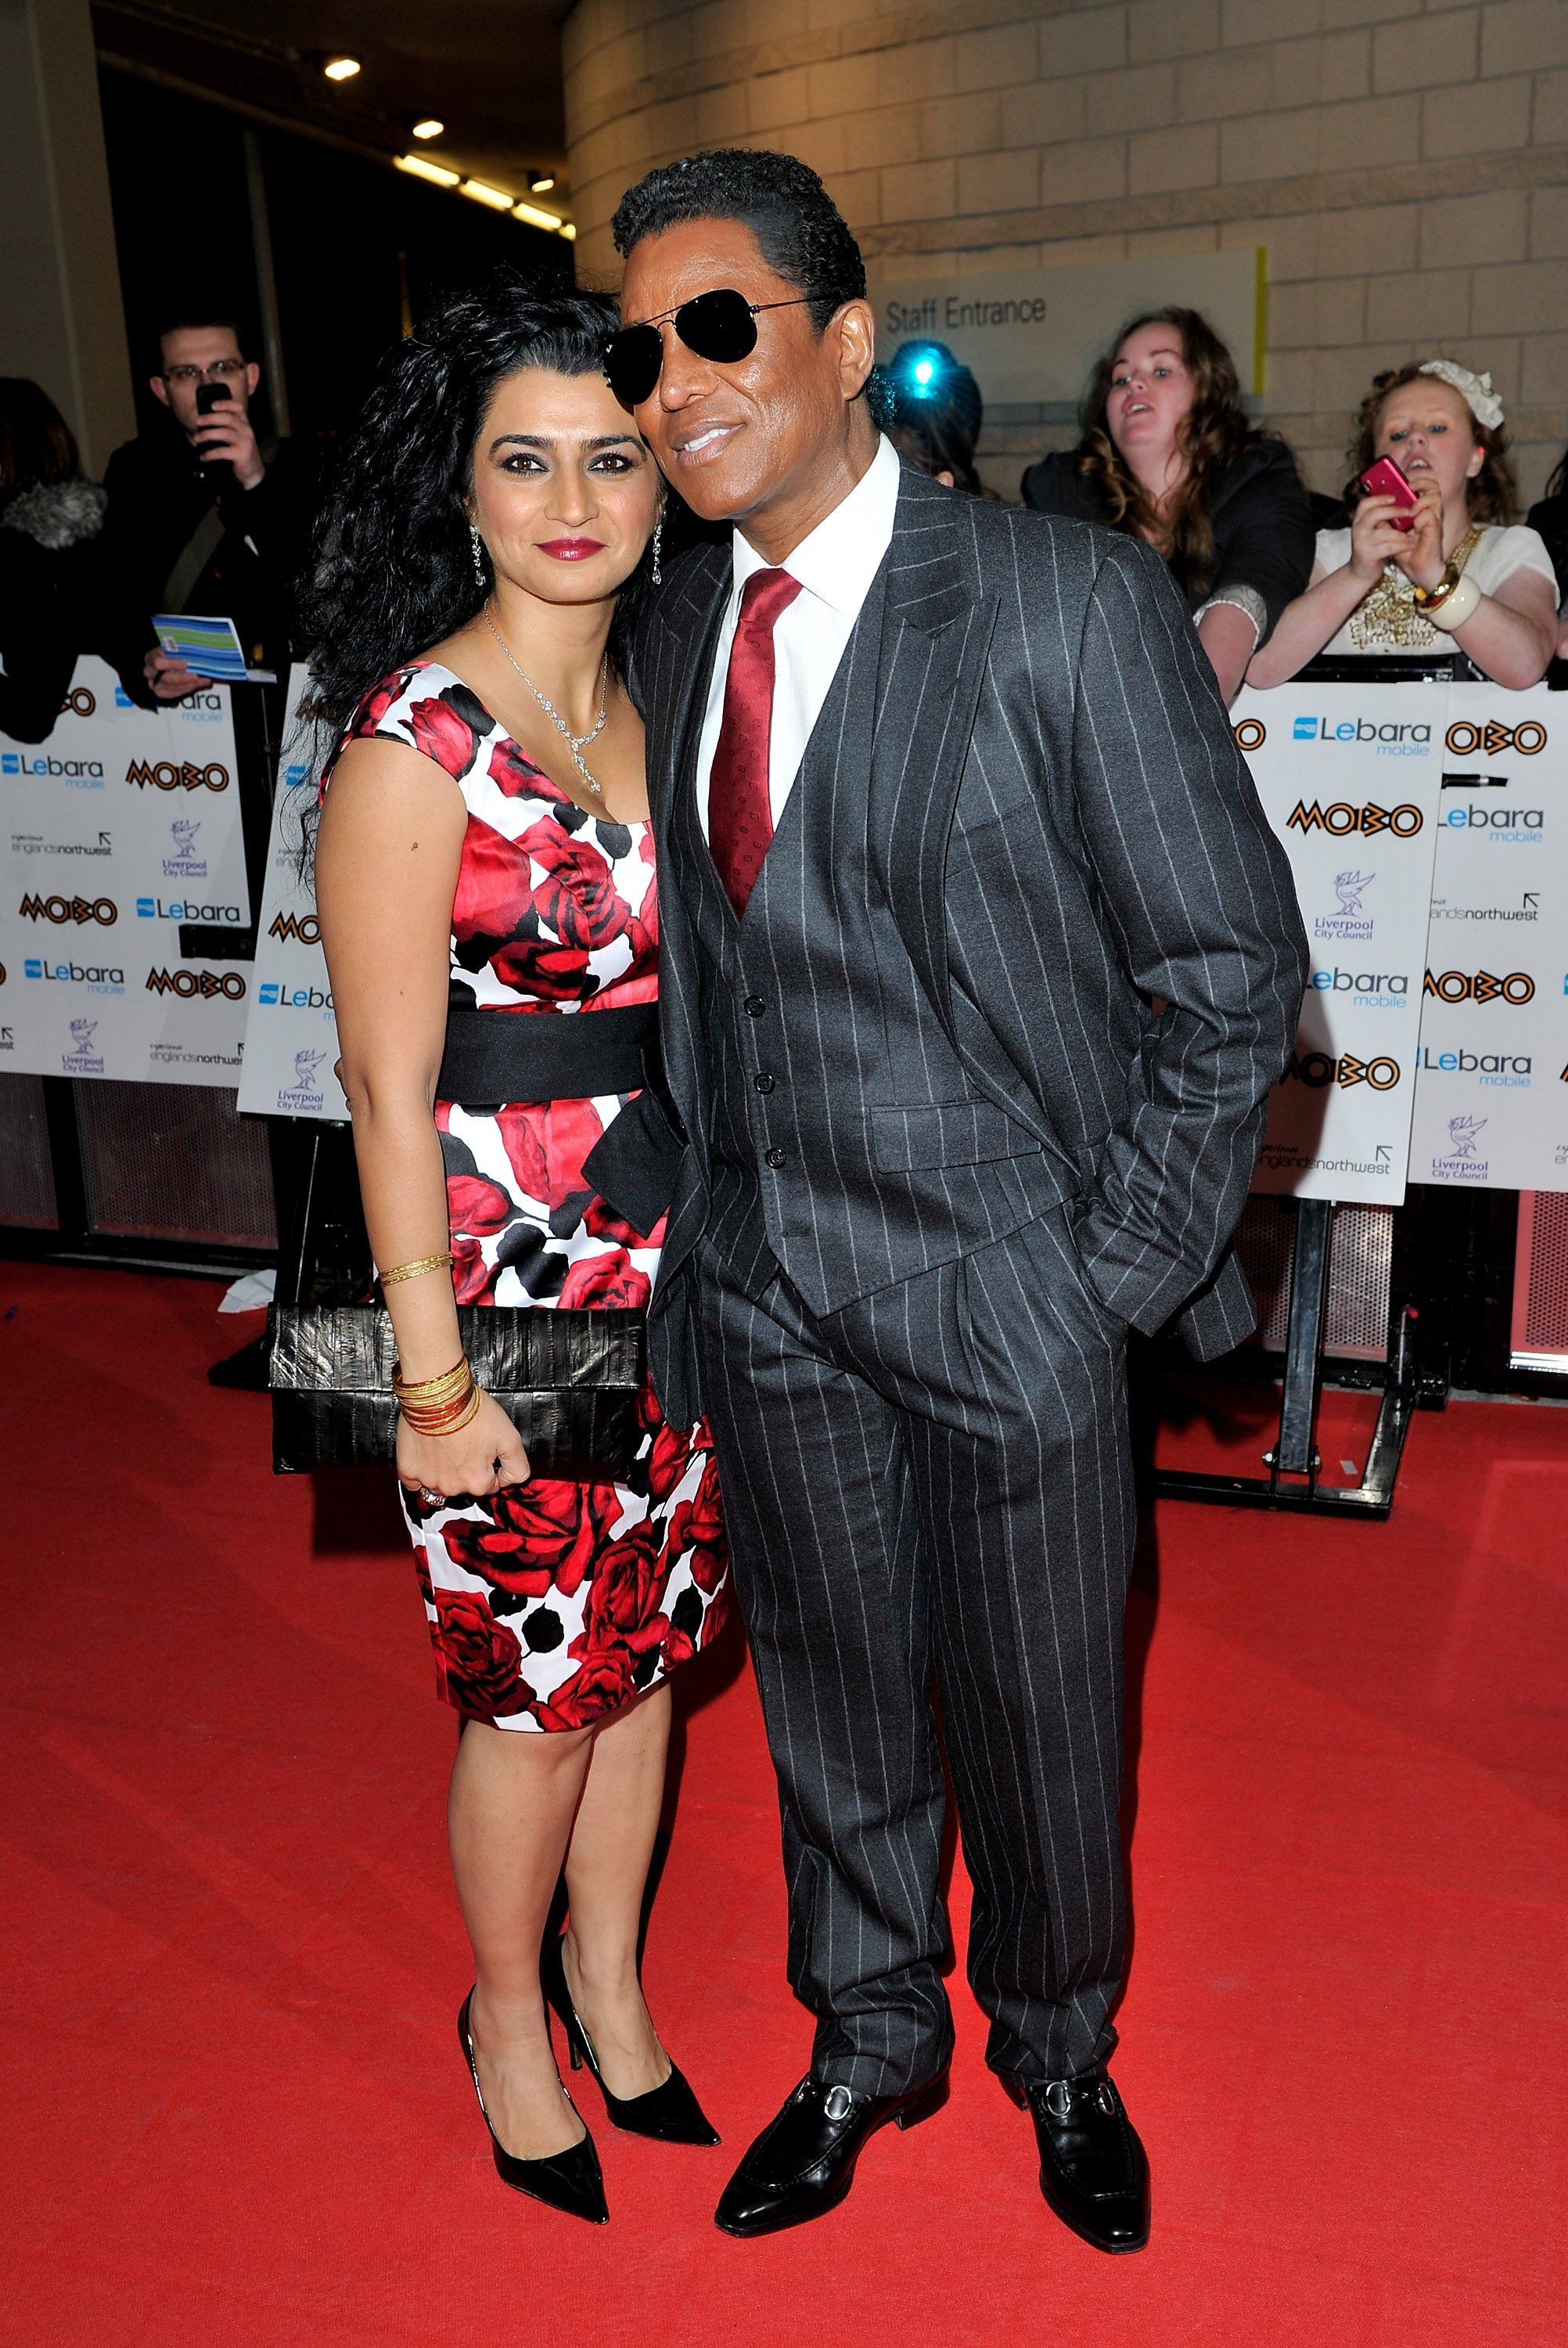 Jermaine Jackson and Hamida Rashid at the MOBO Awards in Liverpool, England on October 20, 2010.   Photo: GettyImages